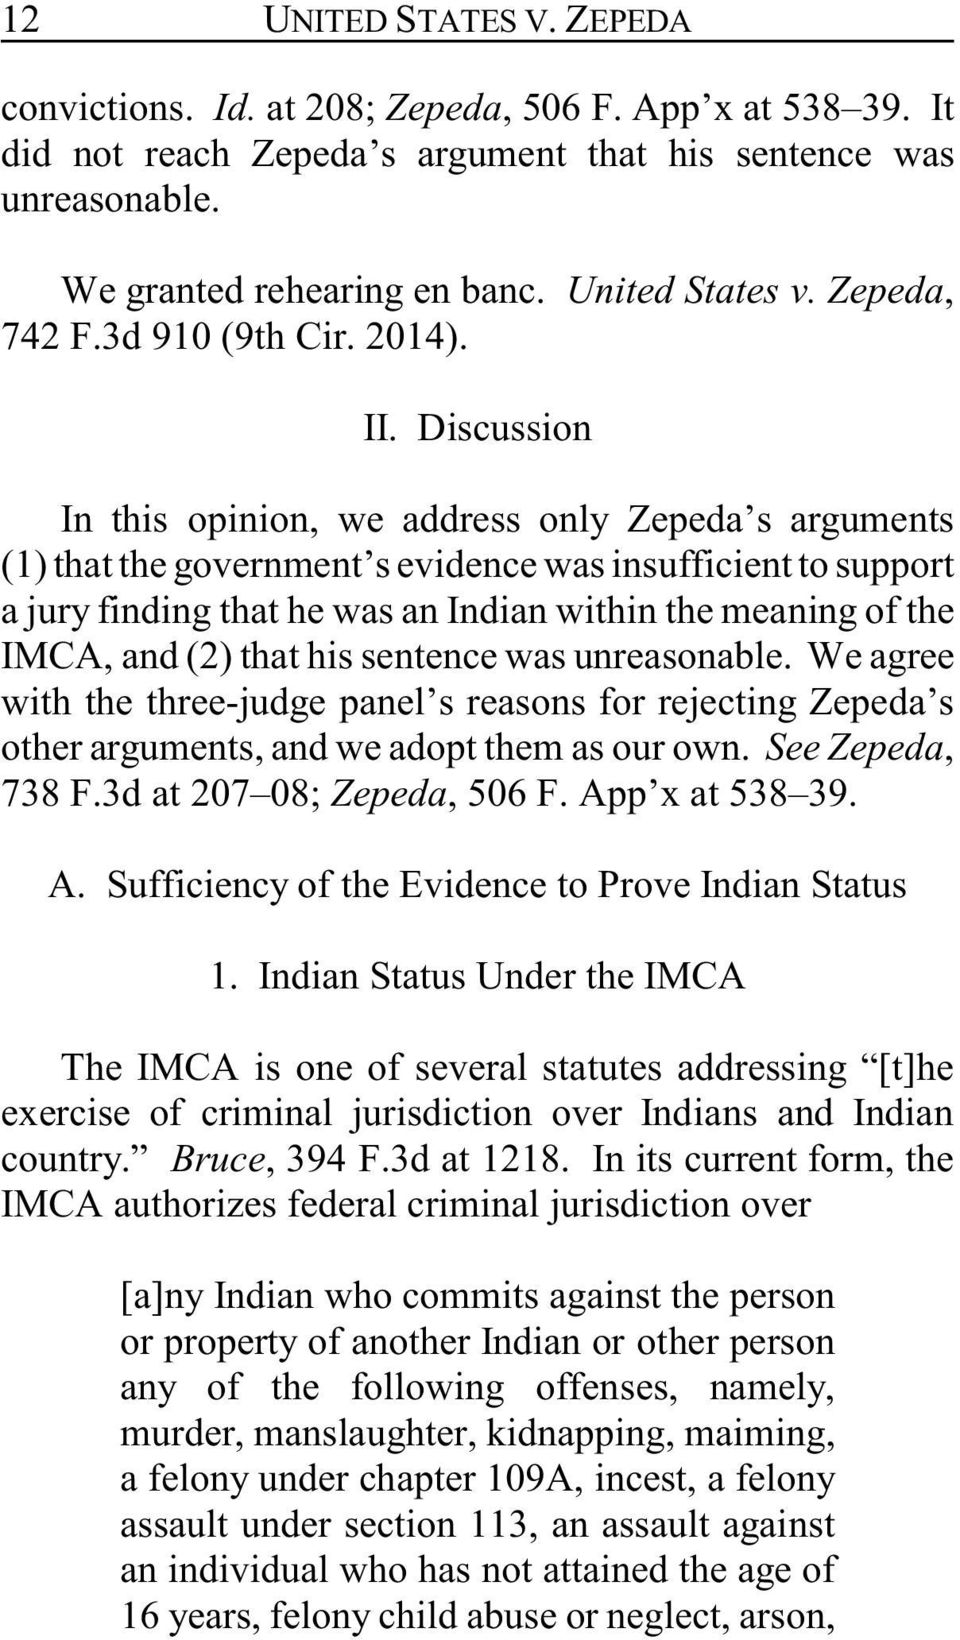 Discussion In this opinion, we address only Zepeda s arguments (1) that the government s evidence was insufficient to support a jury finding that he was an Indian within the meaning of the IMCA, and